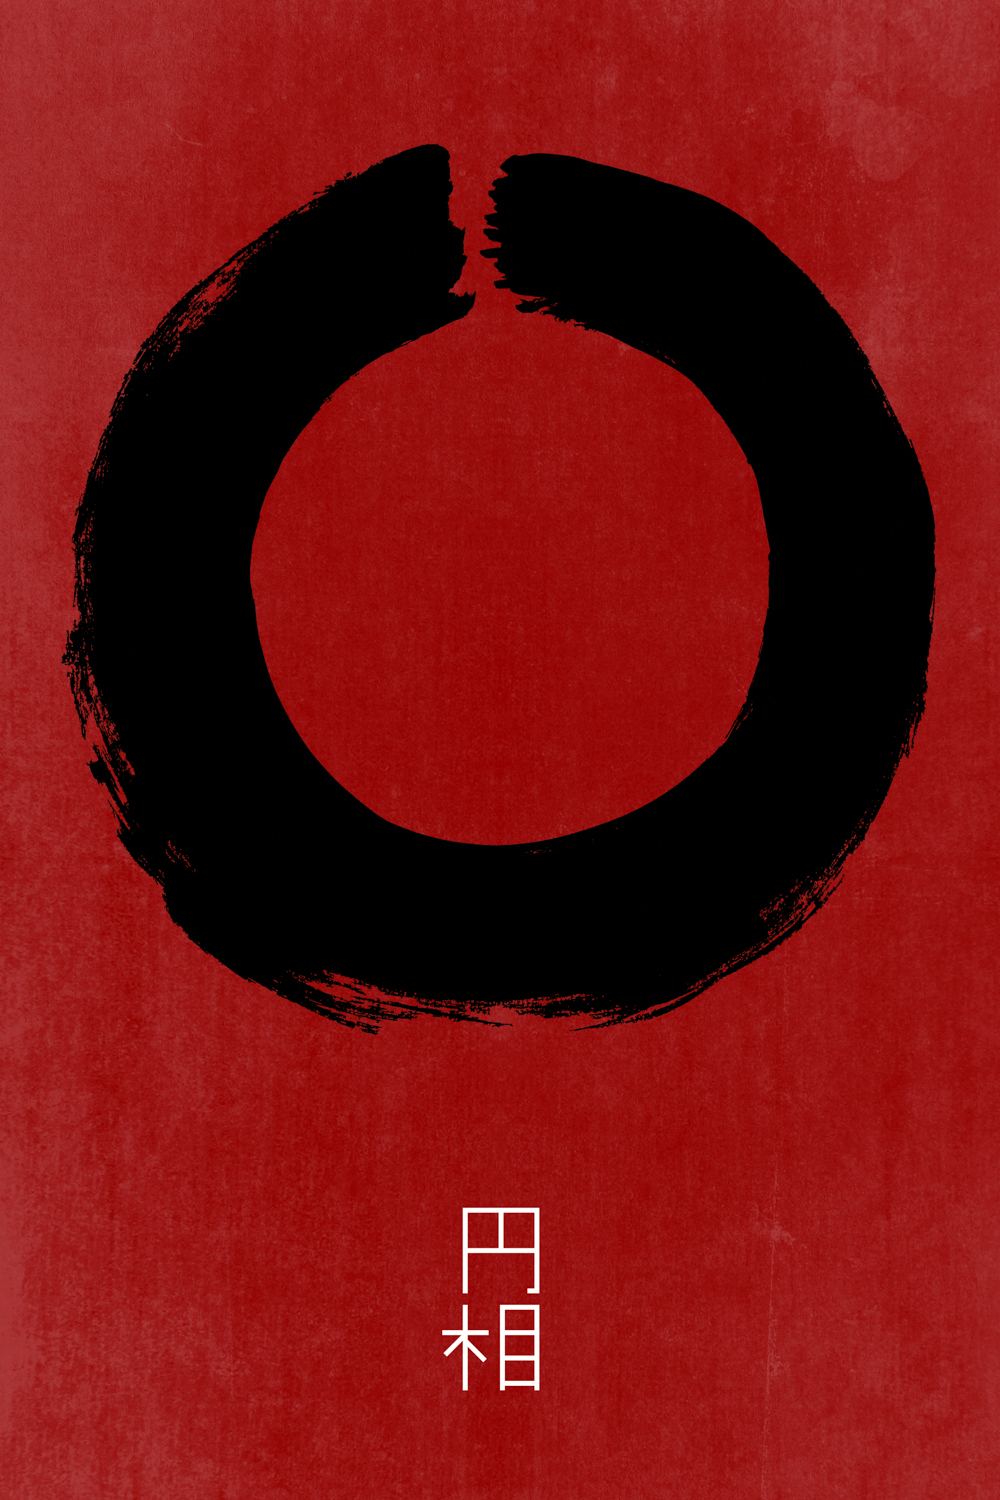 Black Enso symbol on a red background with white Japanese writing character underneath